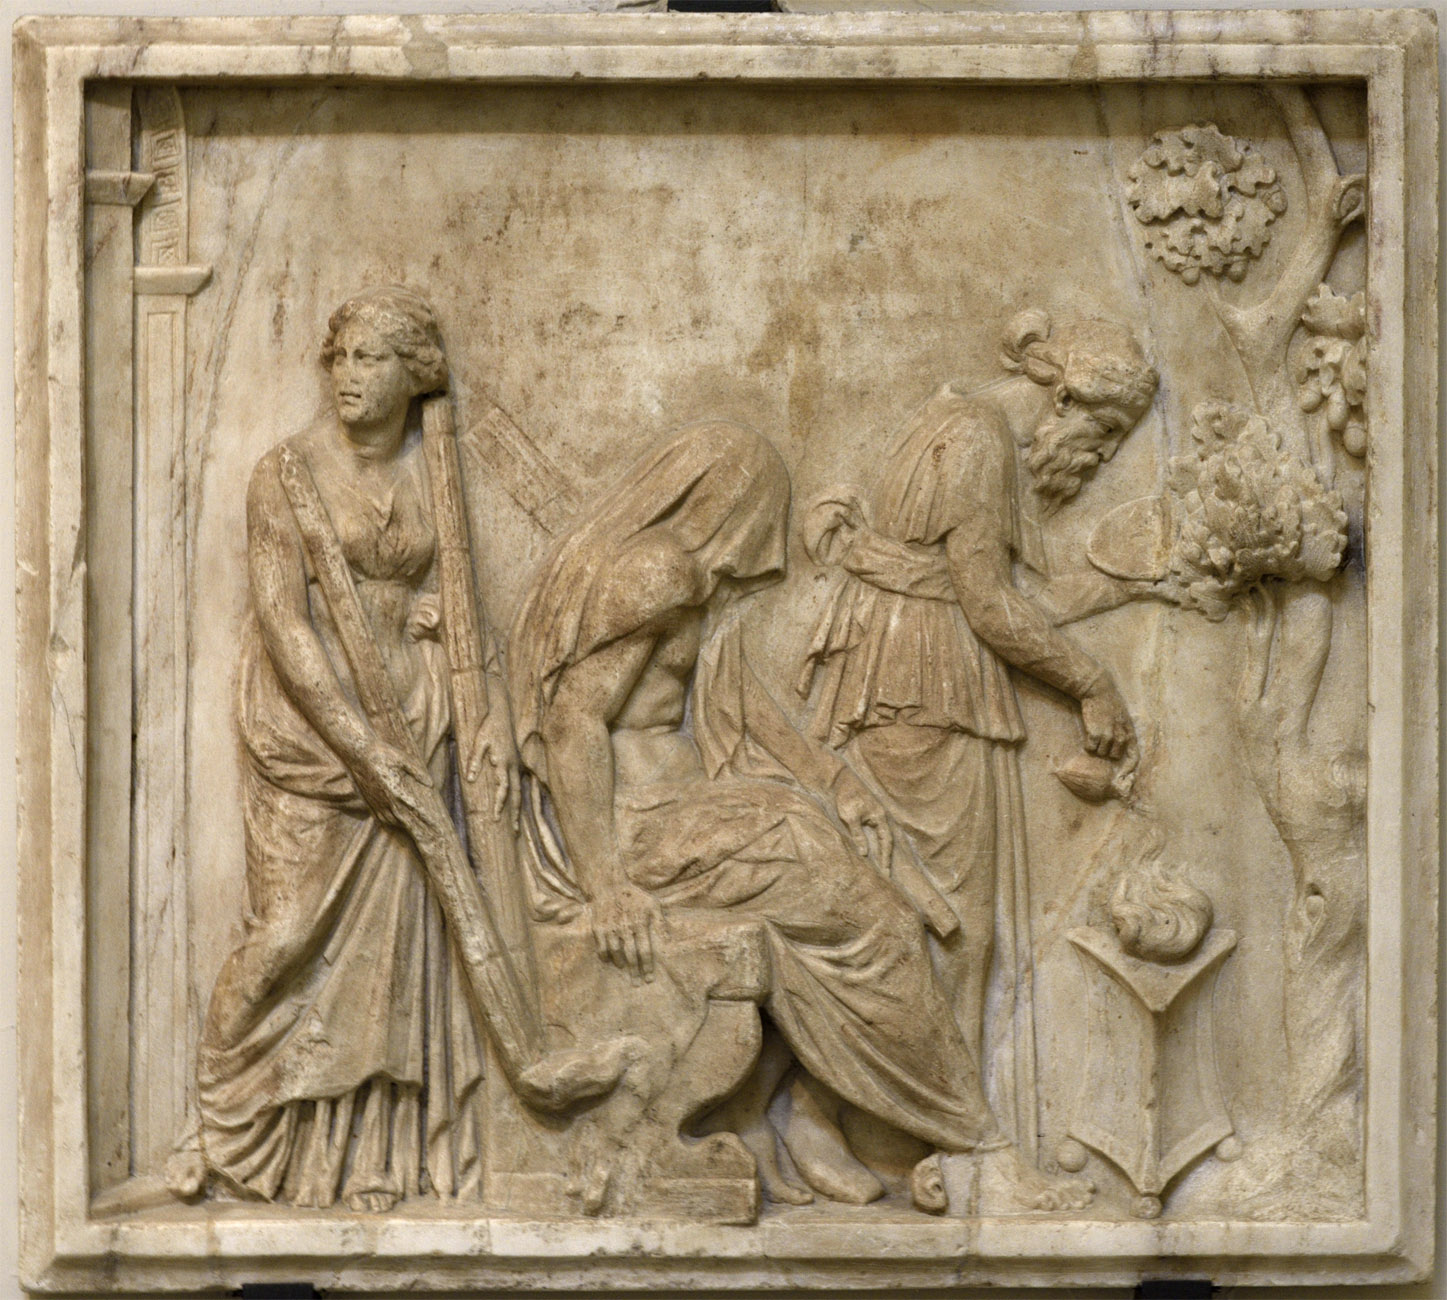 Heracle starting the rites of the Eleusinian Mysteries. Neo-Attic relief. Luna varble. Late 1st cent. BCE — early 1st cent. CE.  Inv. No. 6679. Naples, National Archaeological Museum